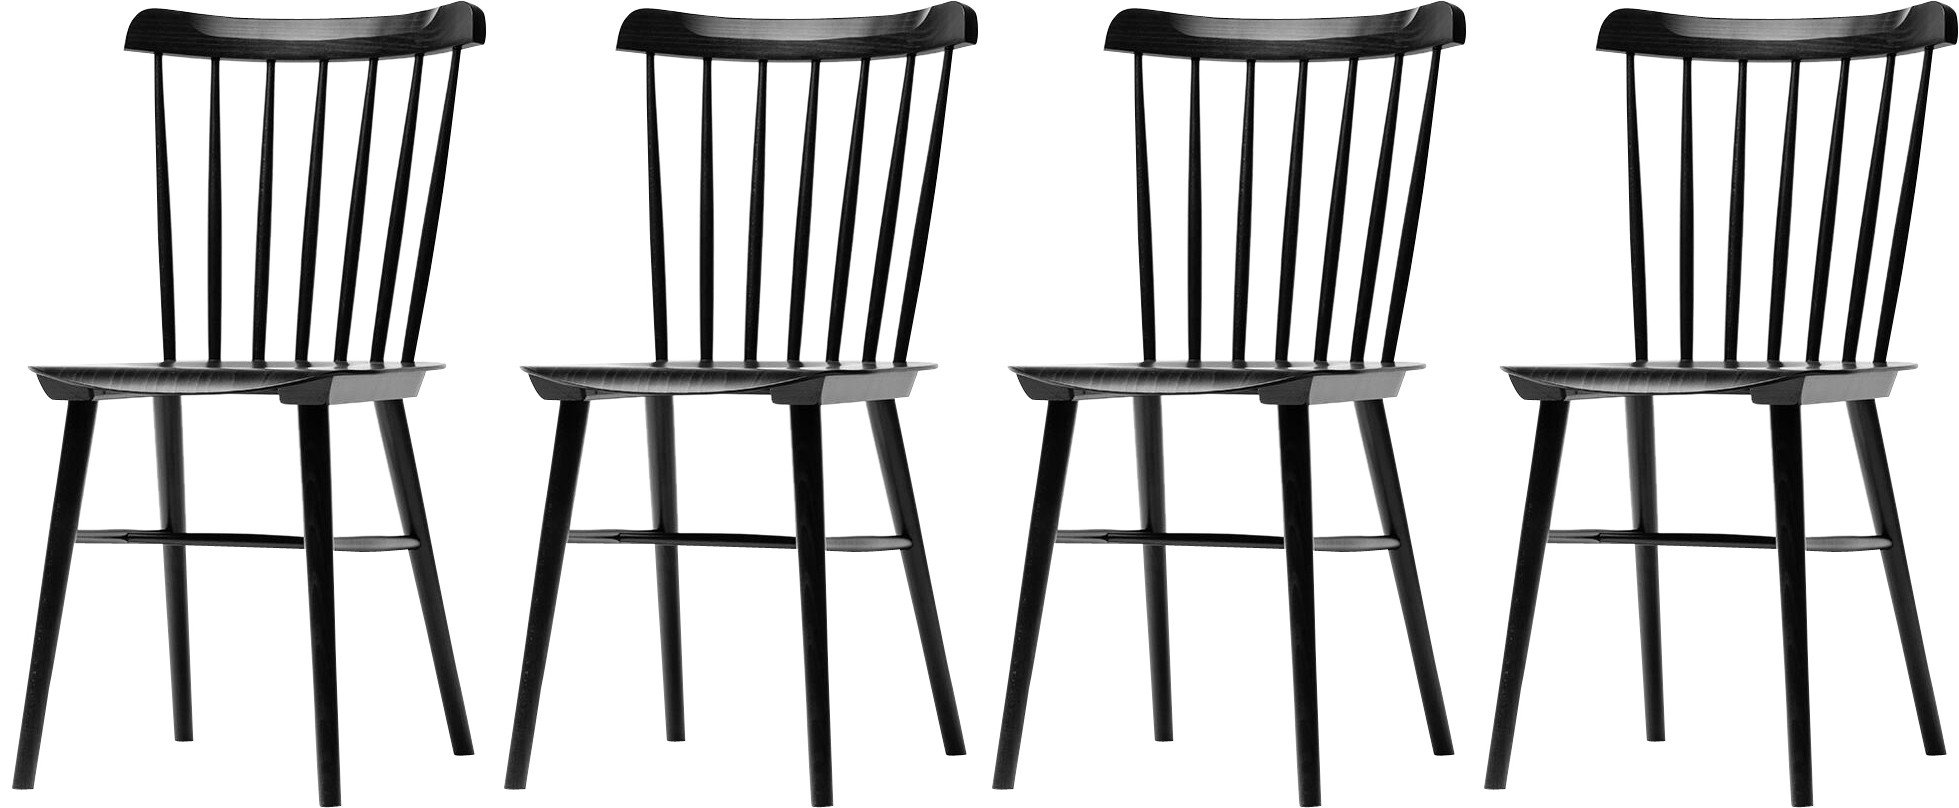 Set of Four Ironica Chair Black Beech, TON